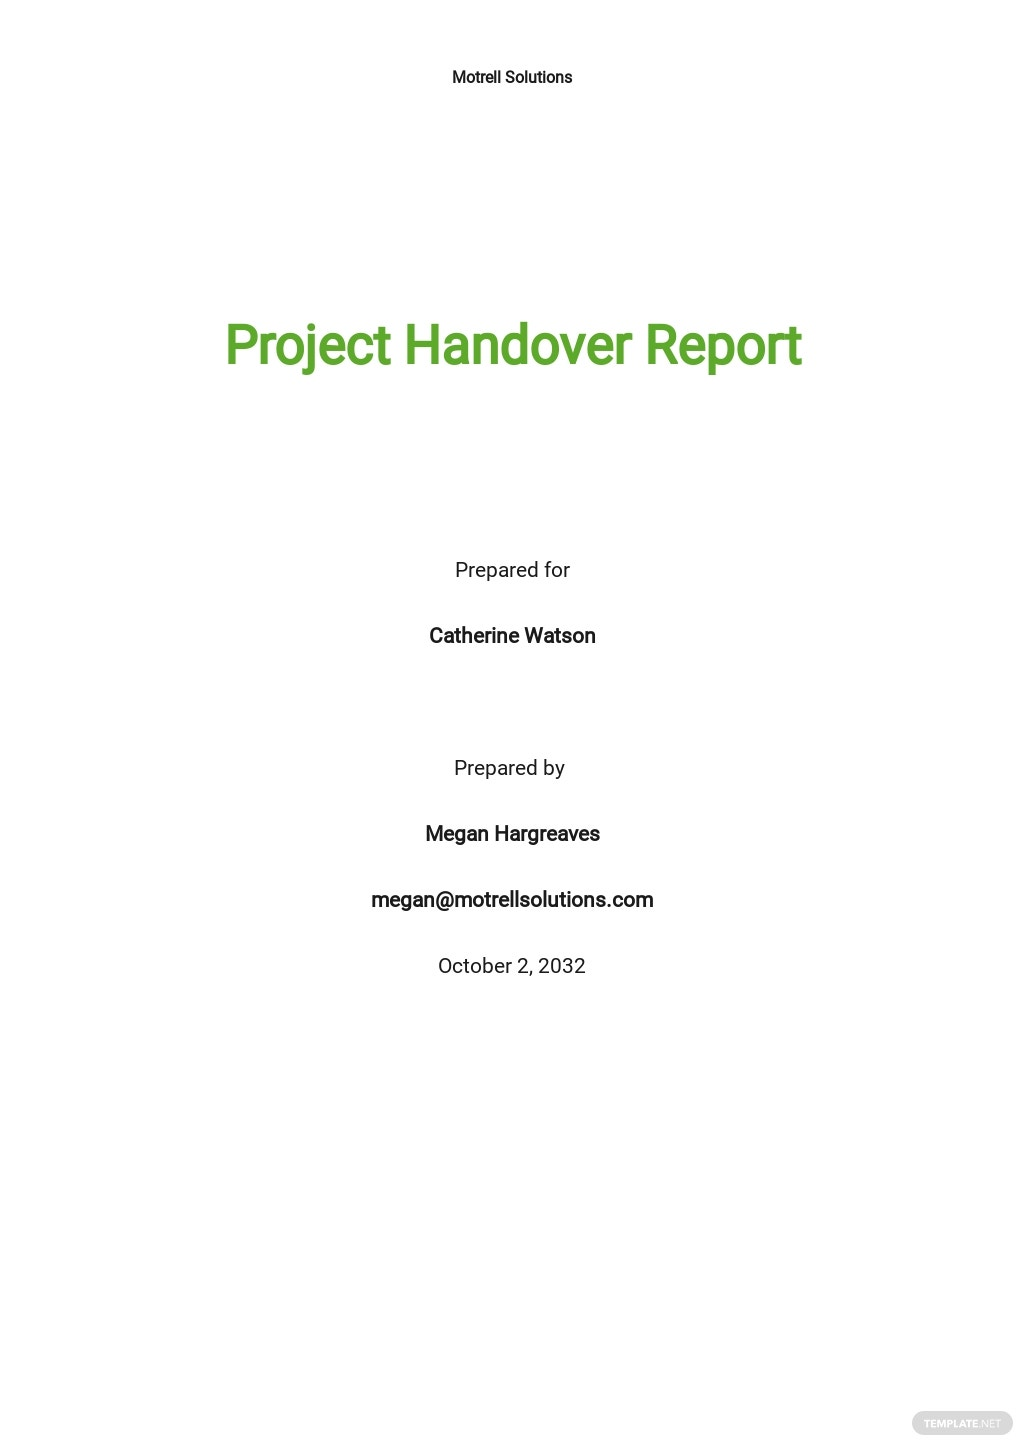 Project Handover Report Template